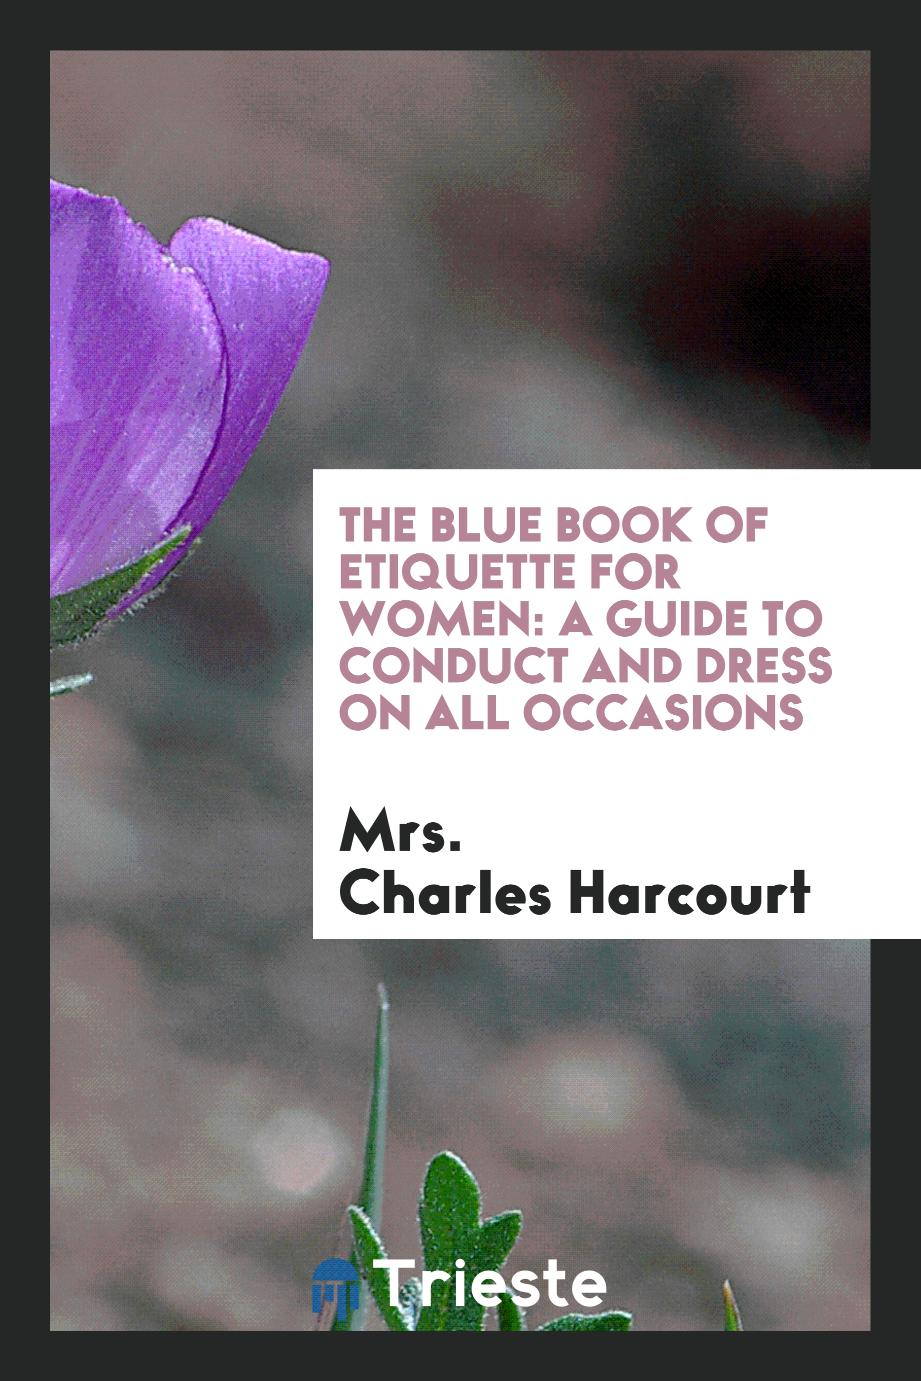 The Blue Book of Etiquette for Women: A Guide to Conduct and Dress on All Occasions